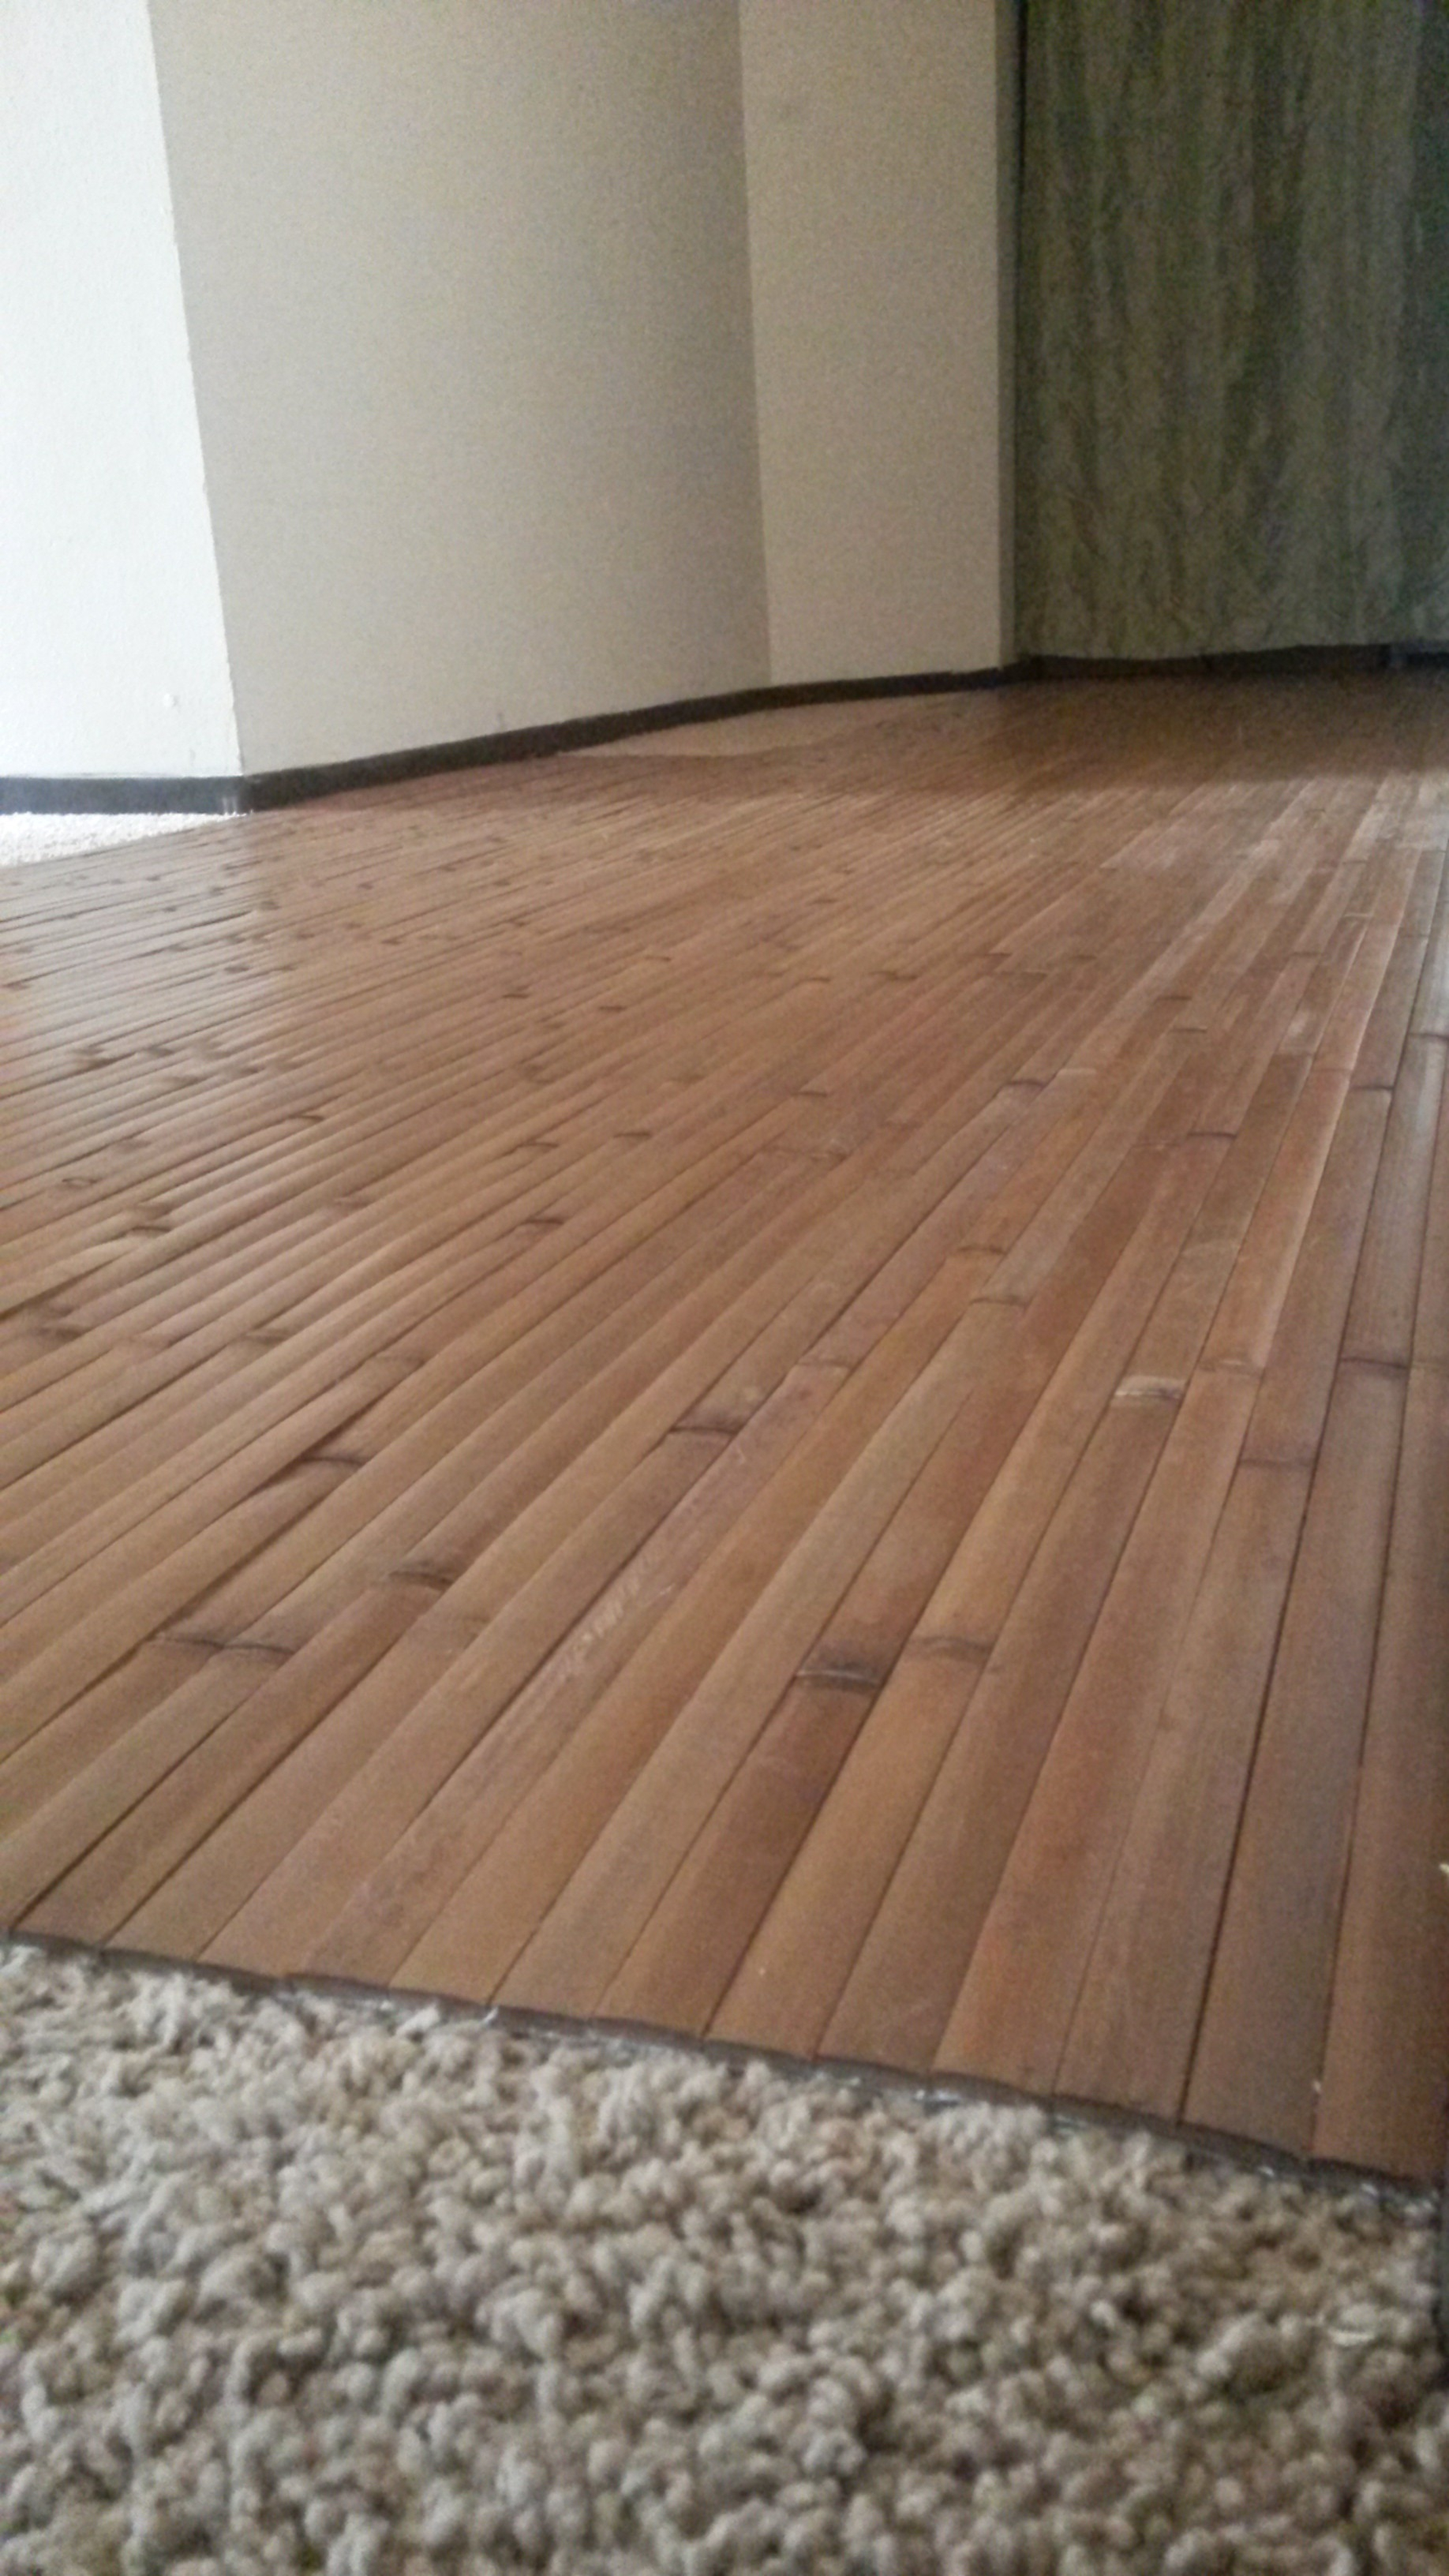 Laying Wood Flooring Over Carpet